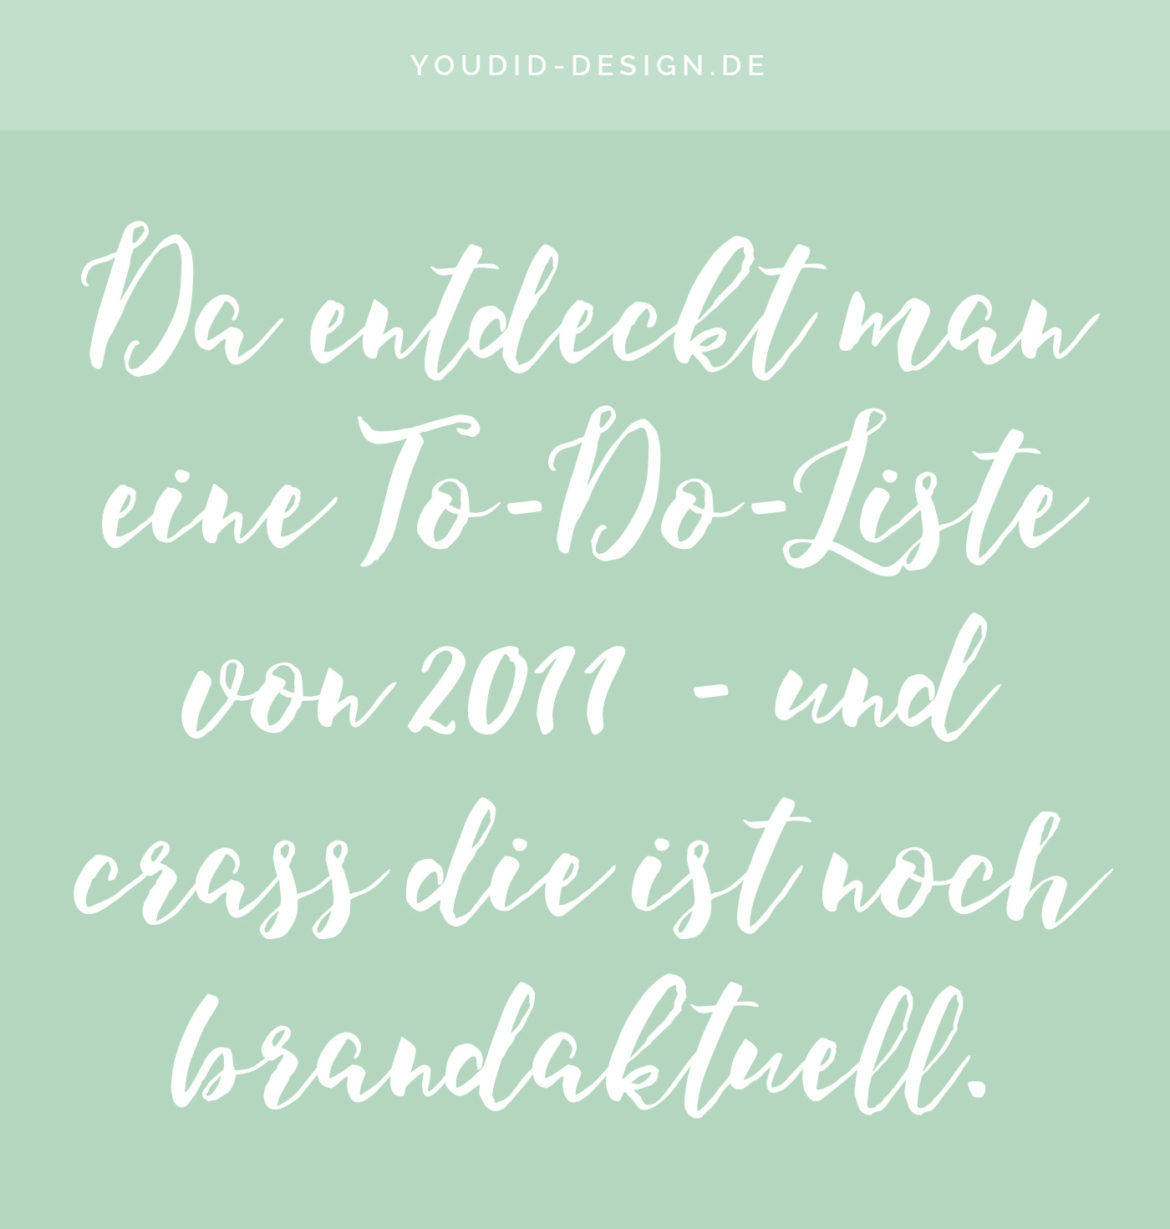 To-Do-Liste 2016 - New Year Resolution Freebie Free Printable | www.youdid-design.de